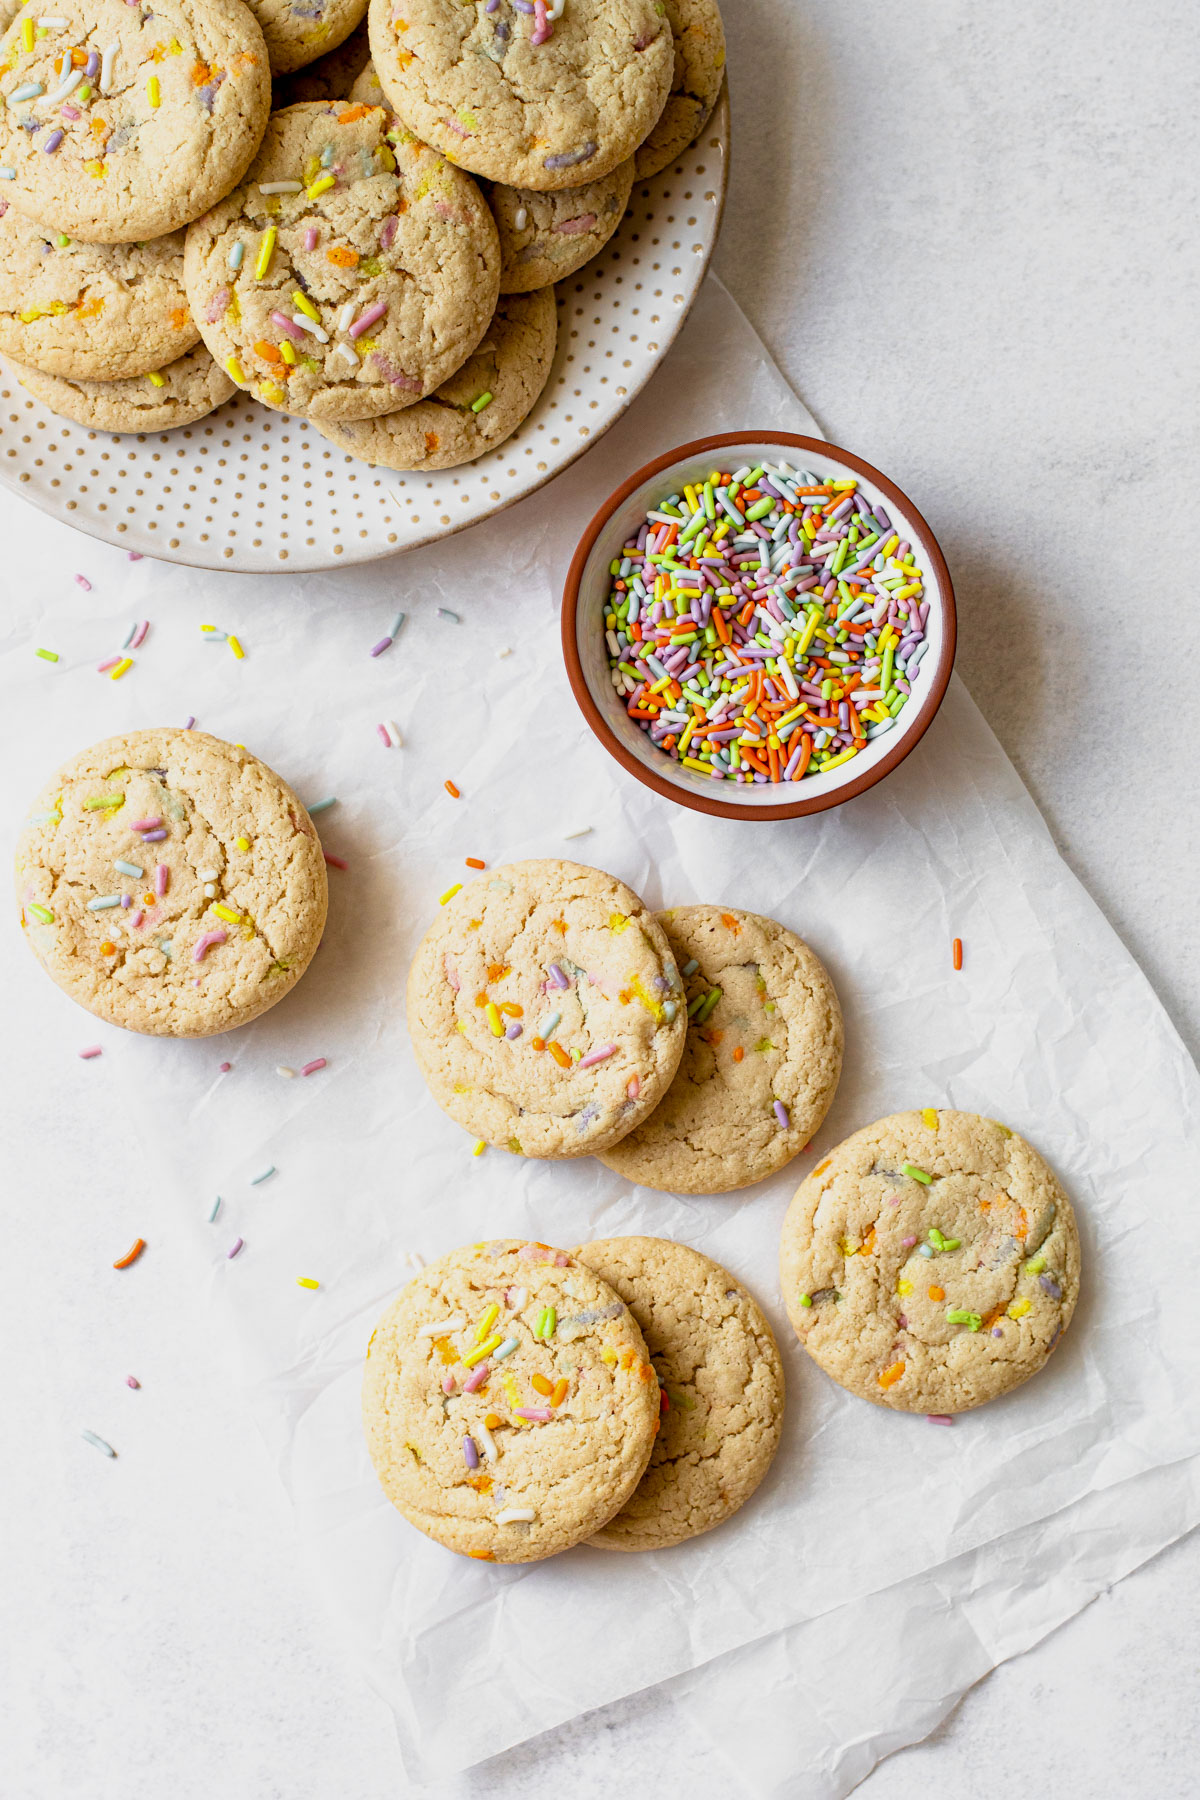 Funfetti sugar cookies next to a bowl of sprinkles.